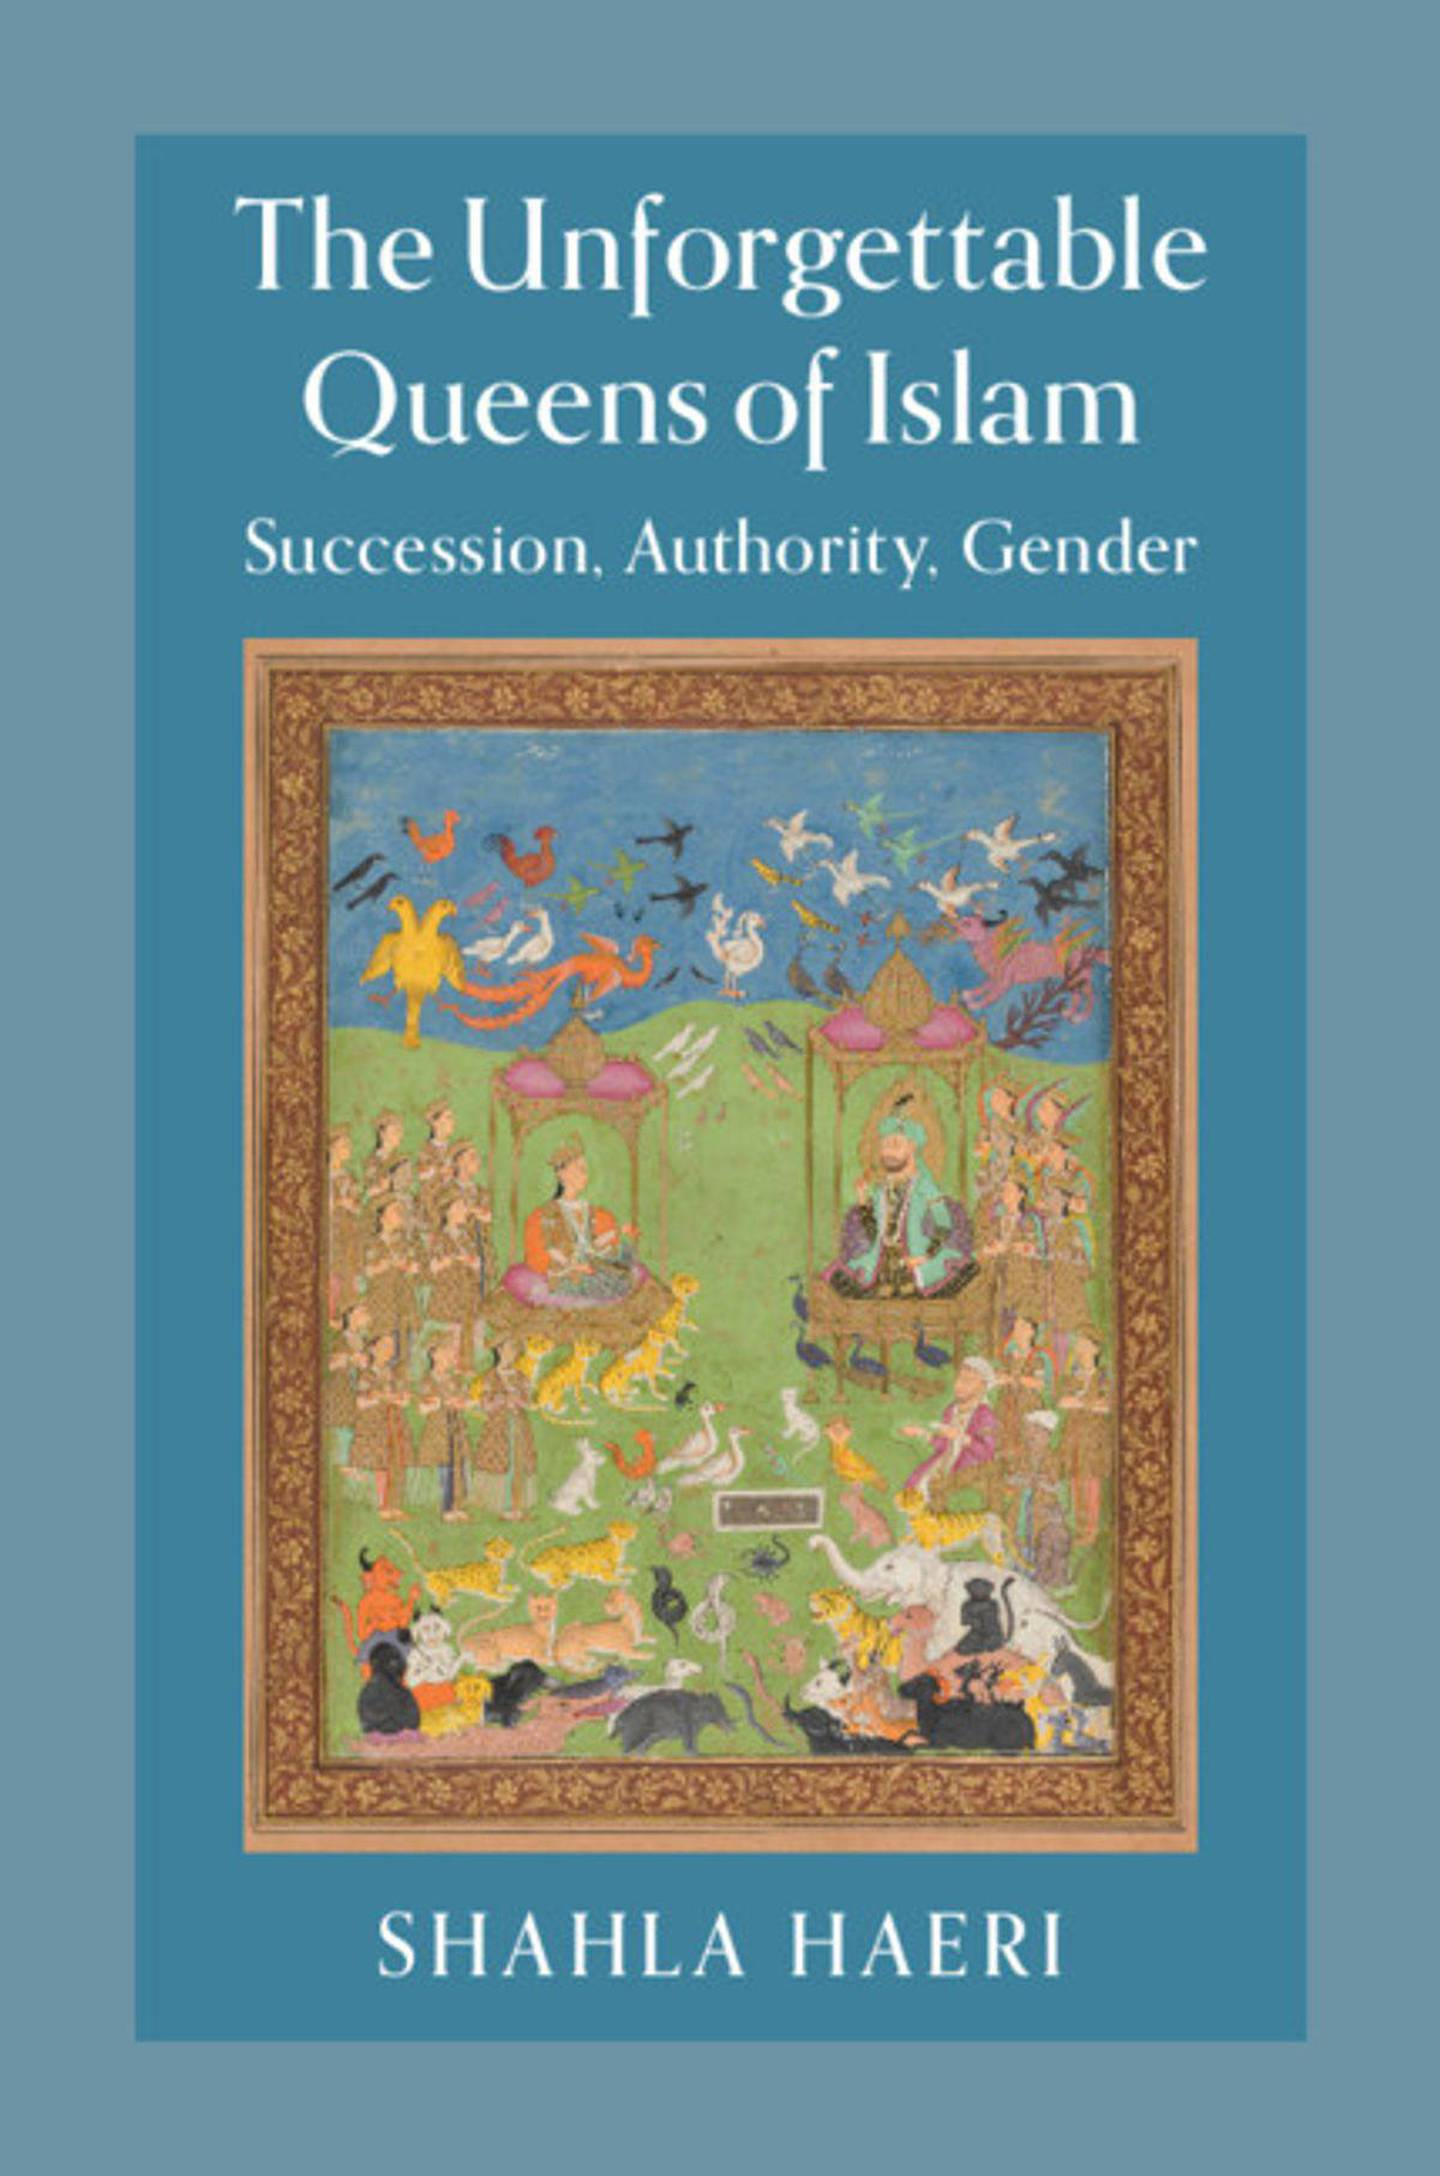 The Unforgettable Queens of Islam: Succession, Authority, Gender by Shahla Haeri. Courtesy Cambridge University Press